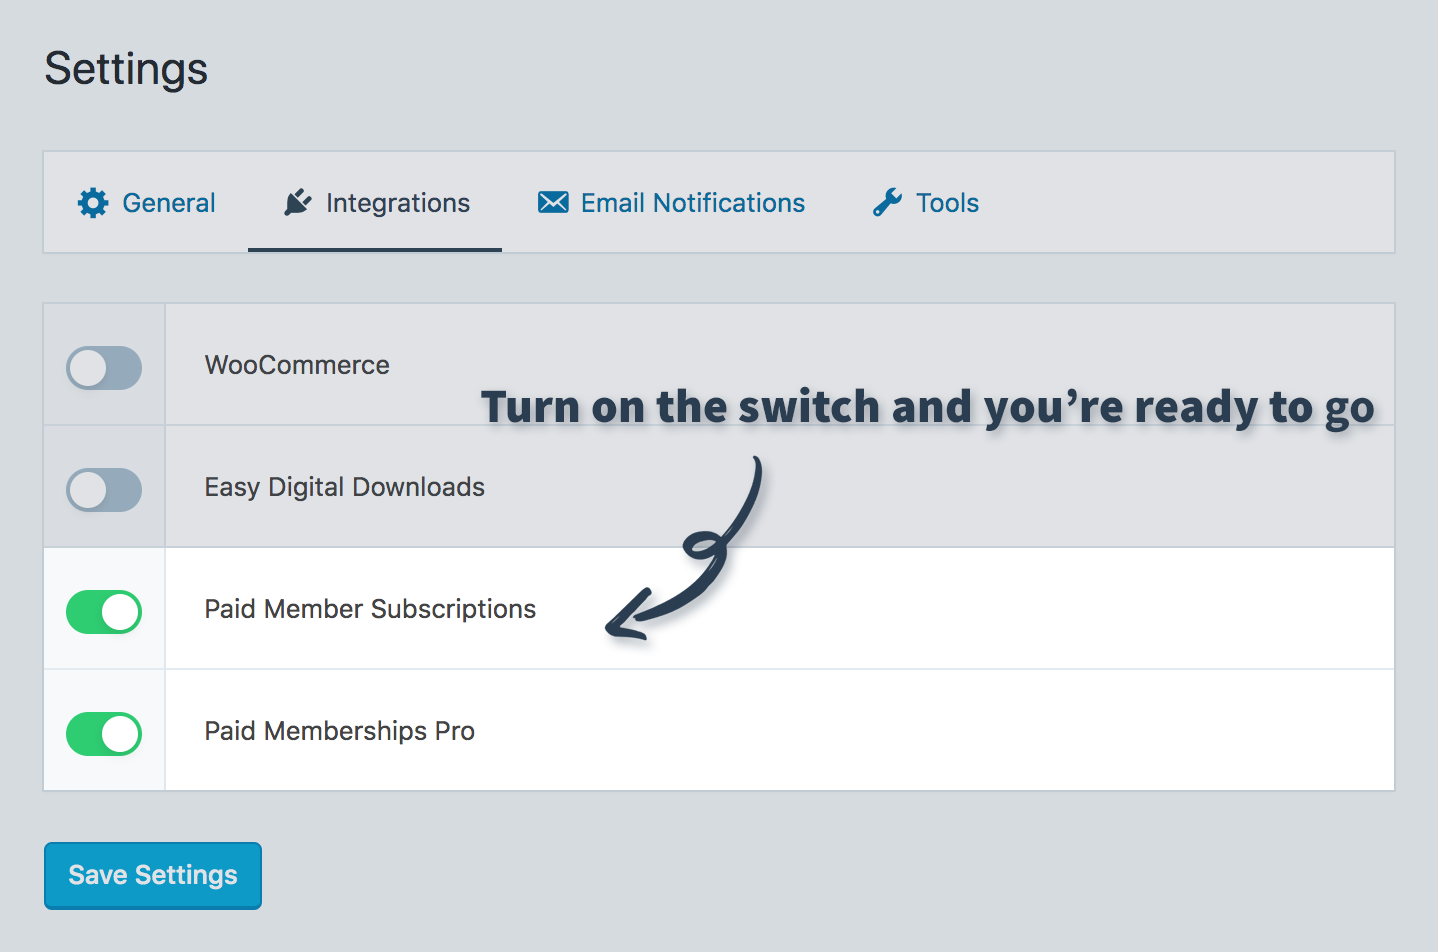 Enable Paid Member Subscriptions and Paid Memberships Pro integrations in SliceWP